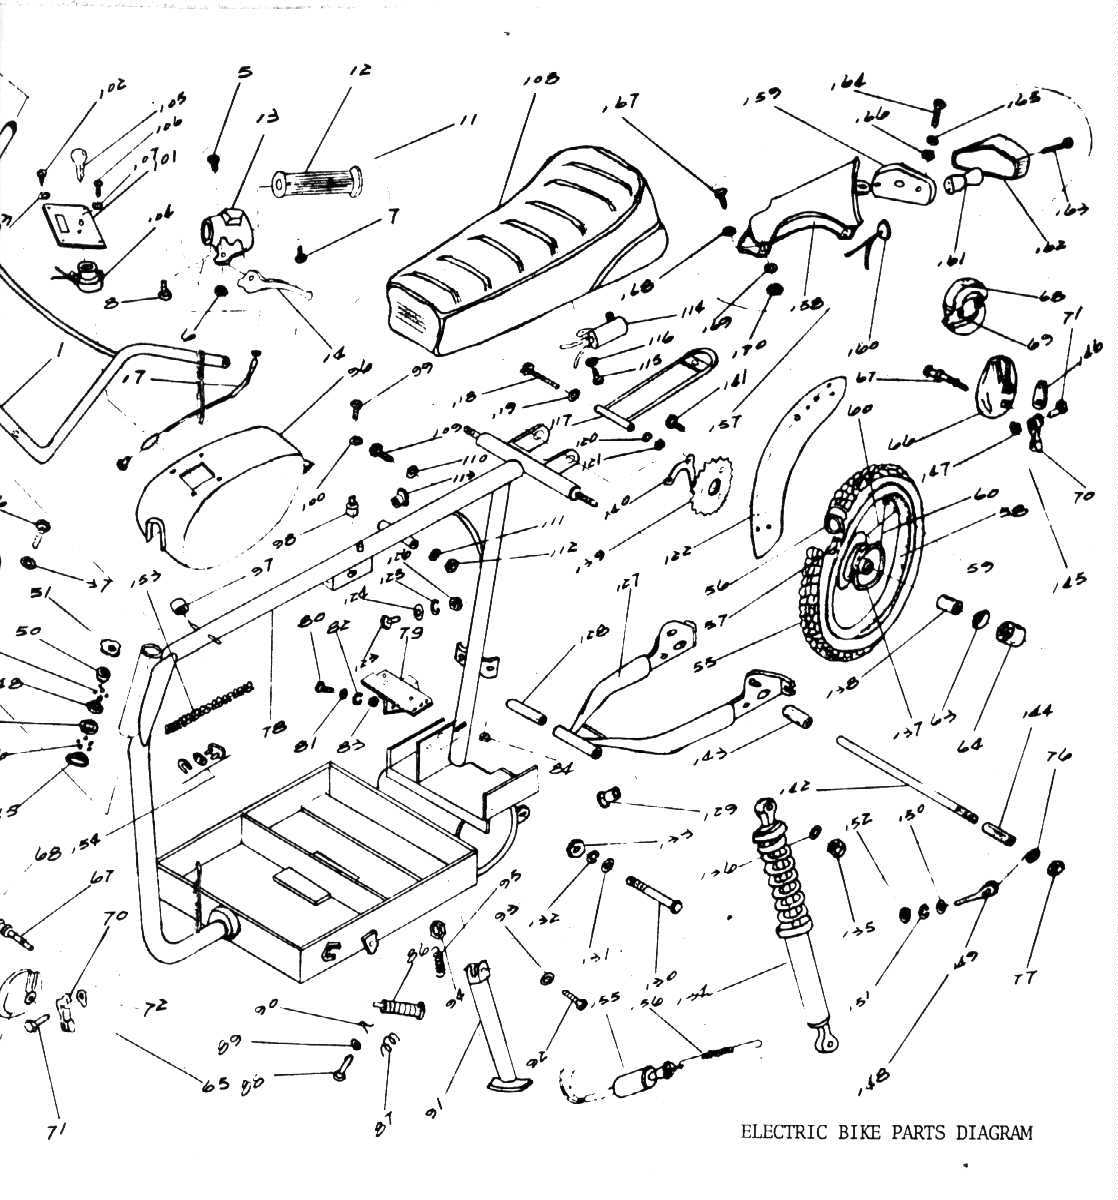 Auranthetic Charger Documentation Bike Wiring Diagram Pdf Image Of Parts Right Side